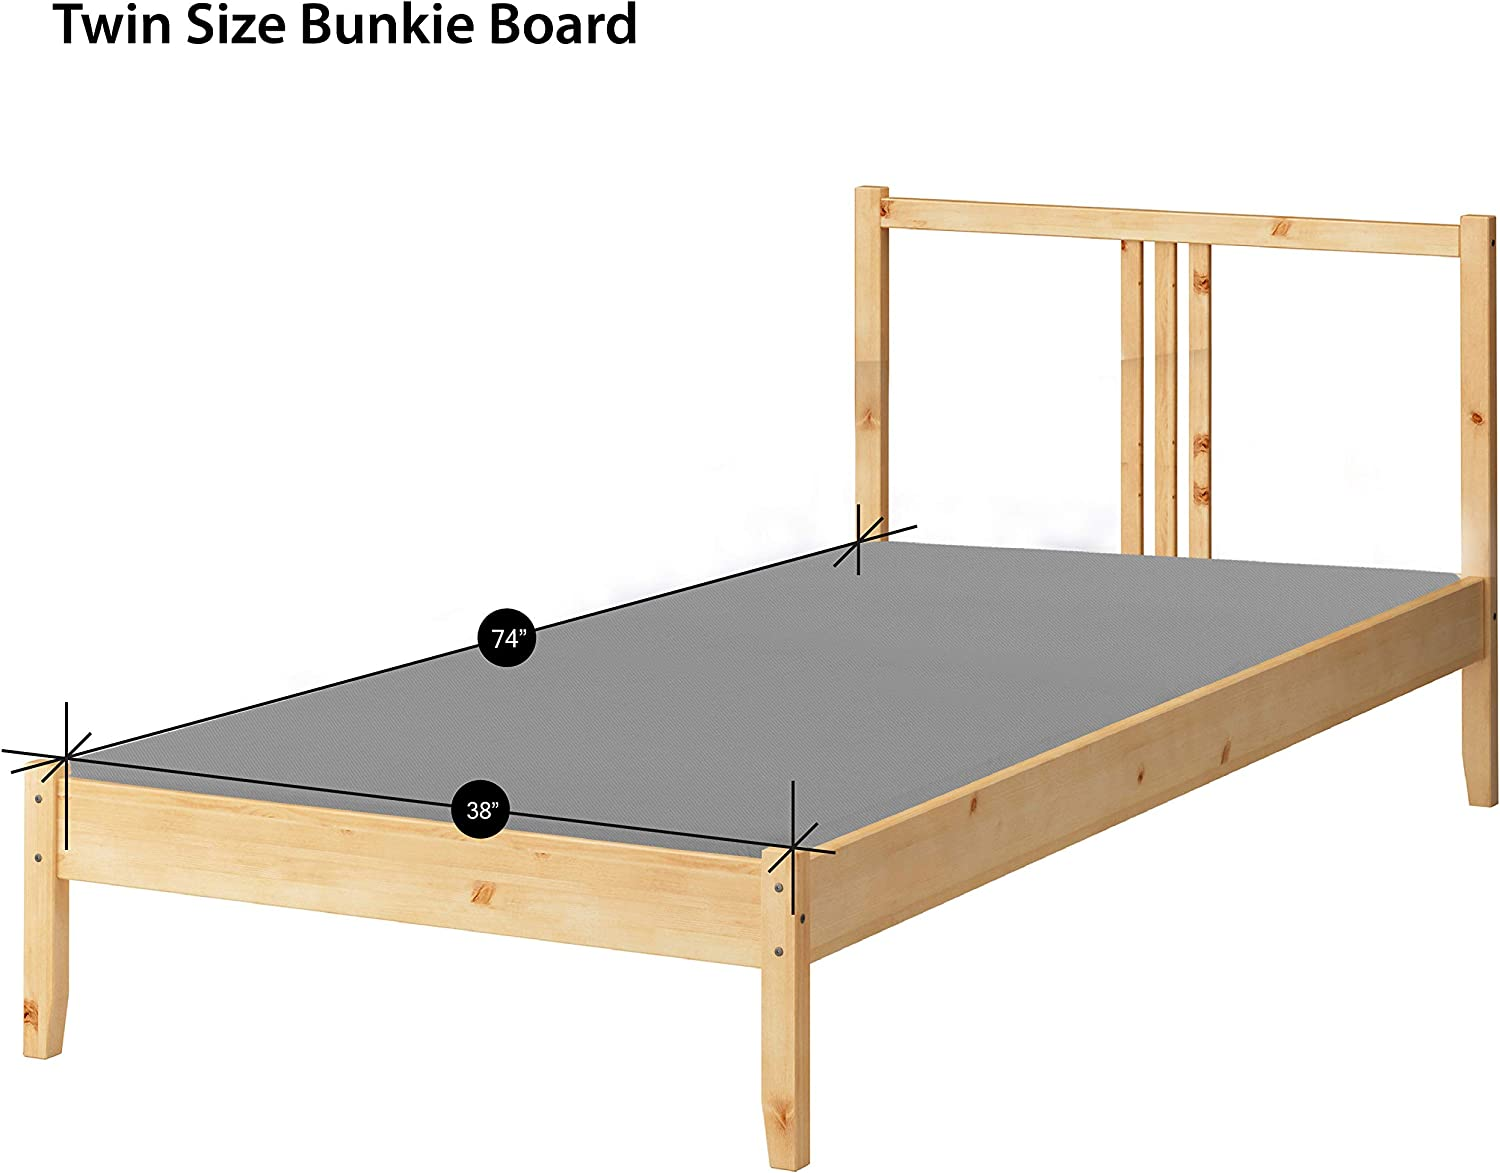 Spinal Solution, Fully Assembled 1.5  Foundation Bunkie Board  Twin Size